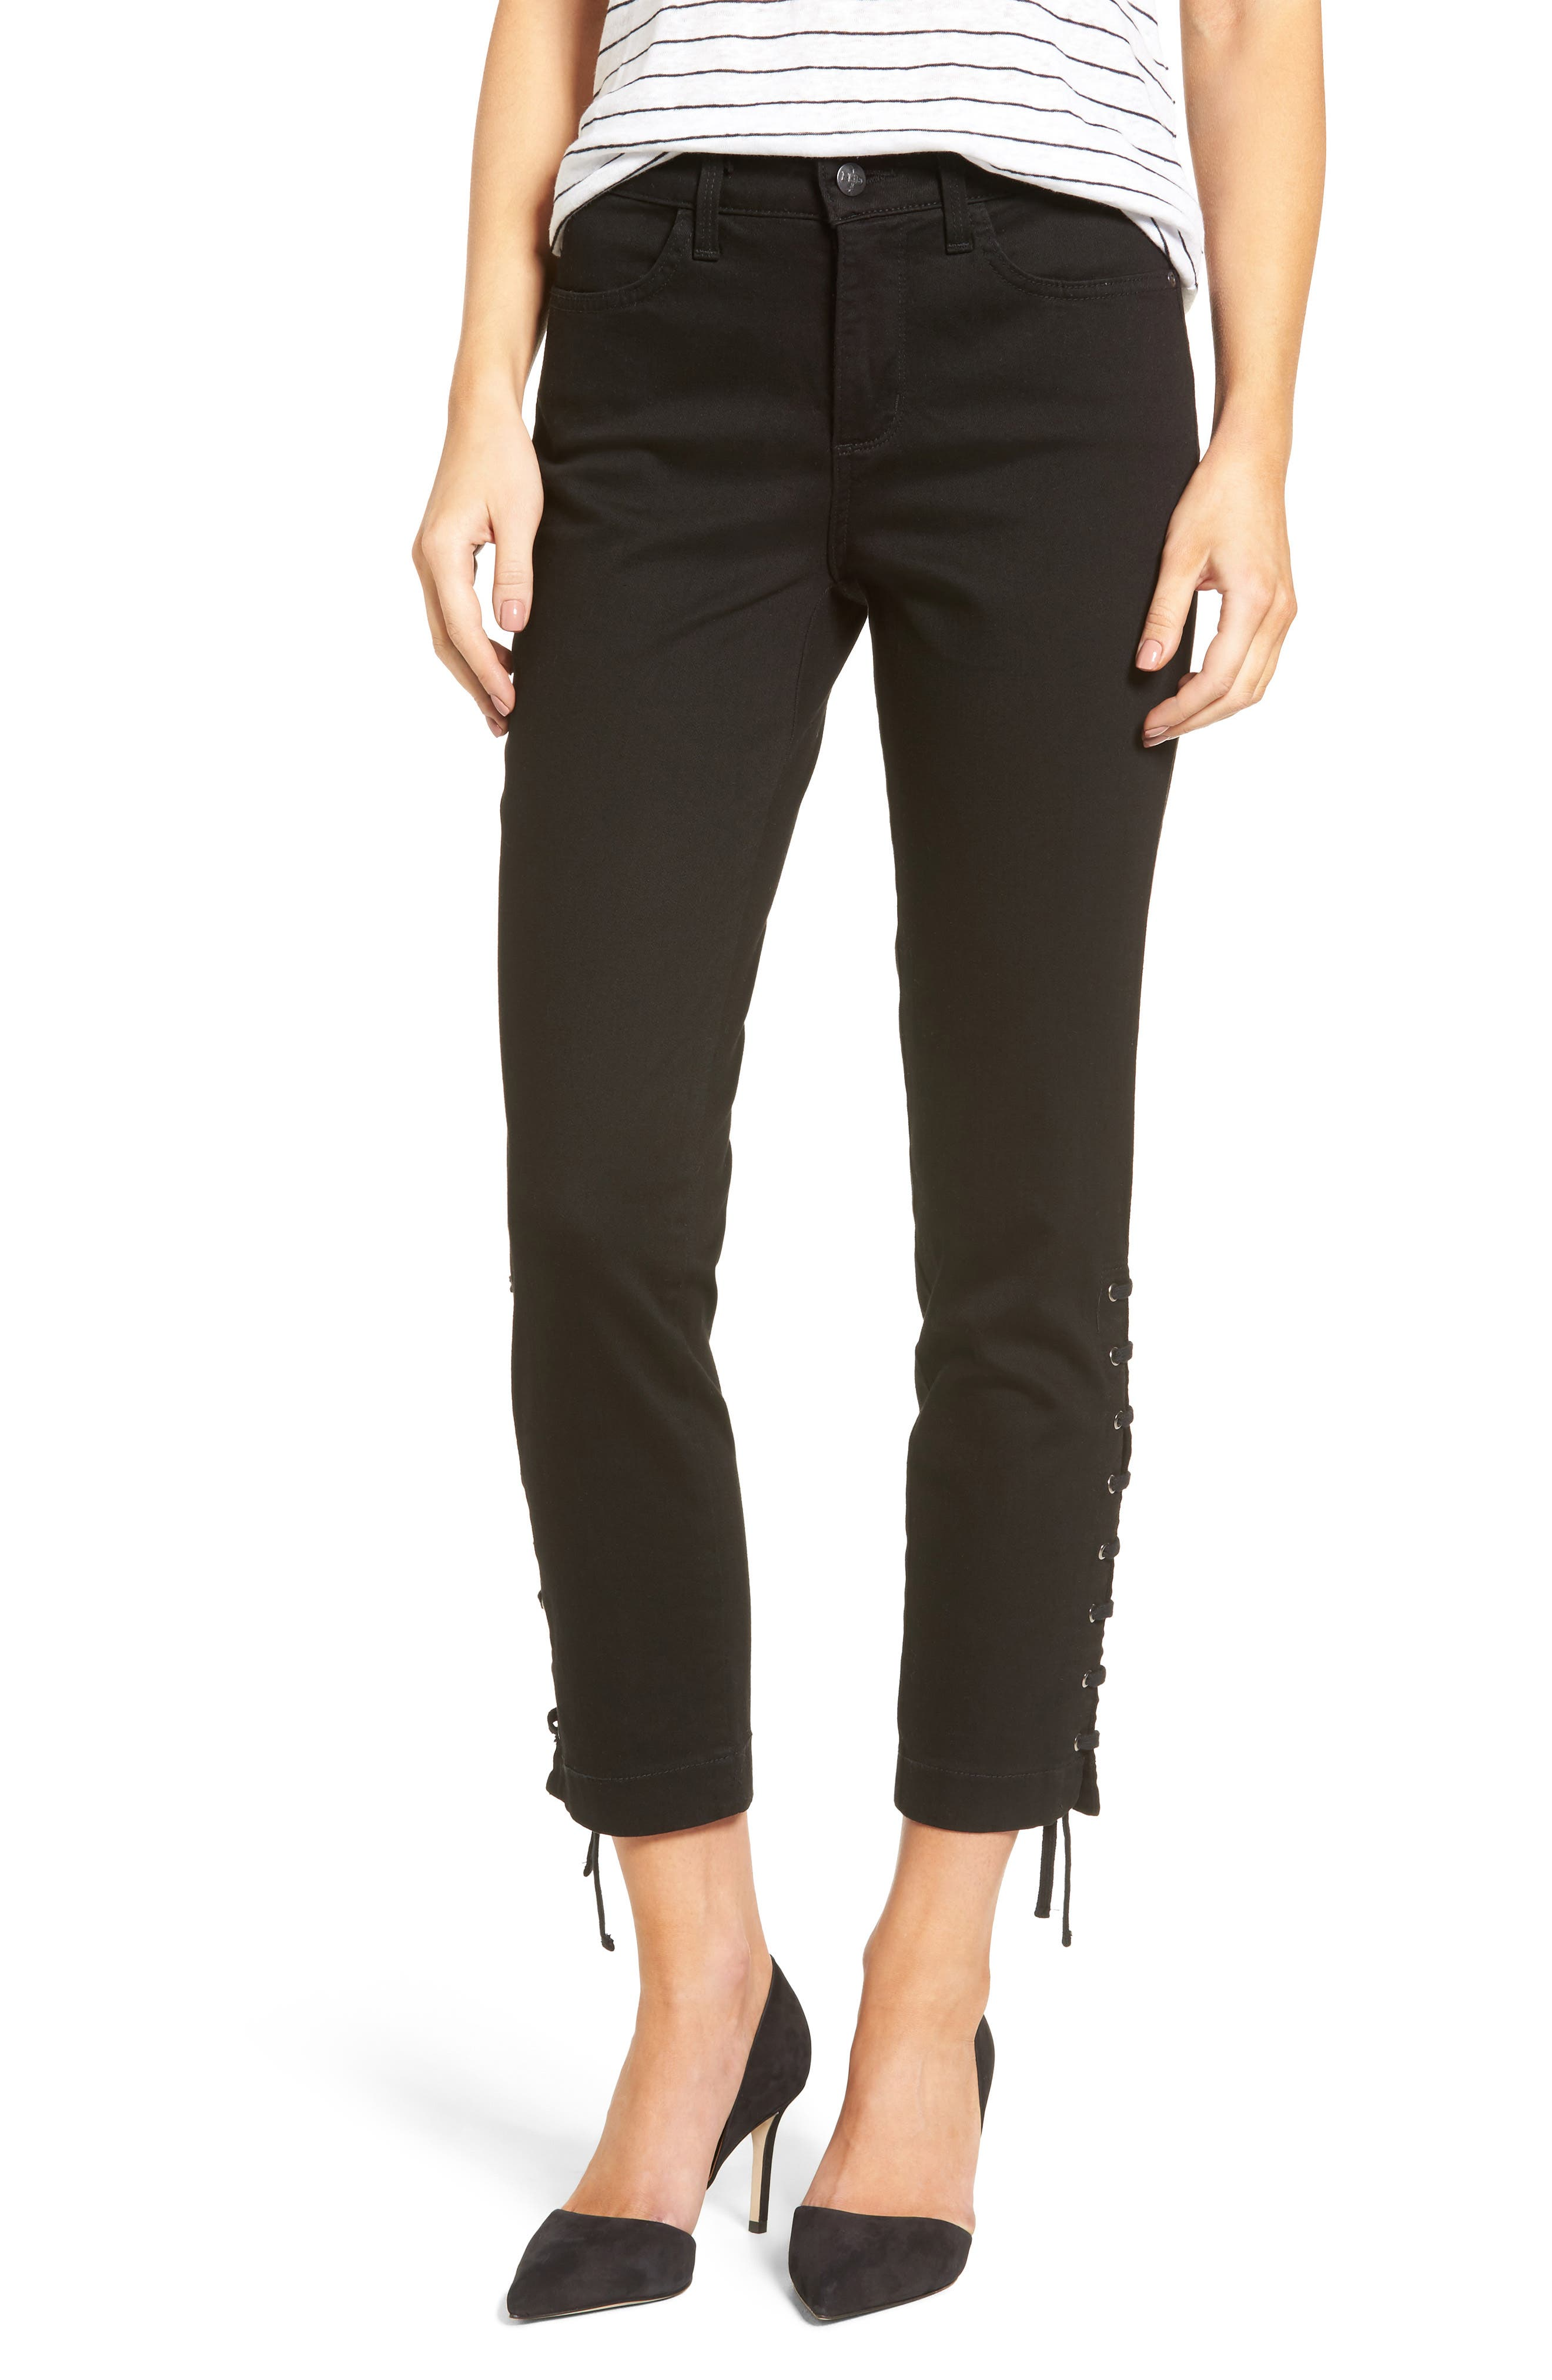 NYDJ Lace-Up Stretch Ankle Pants